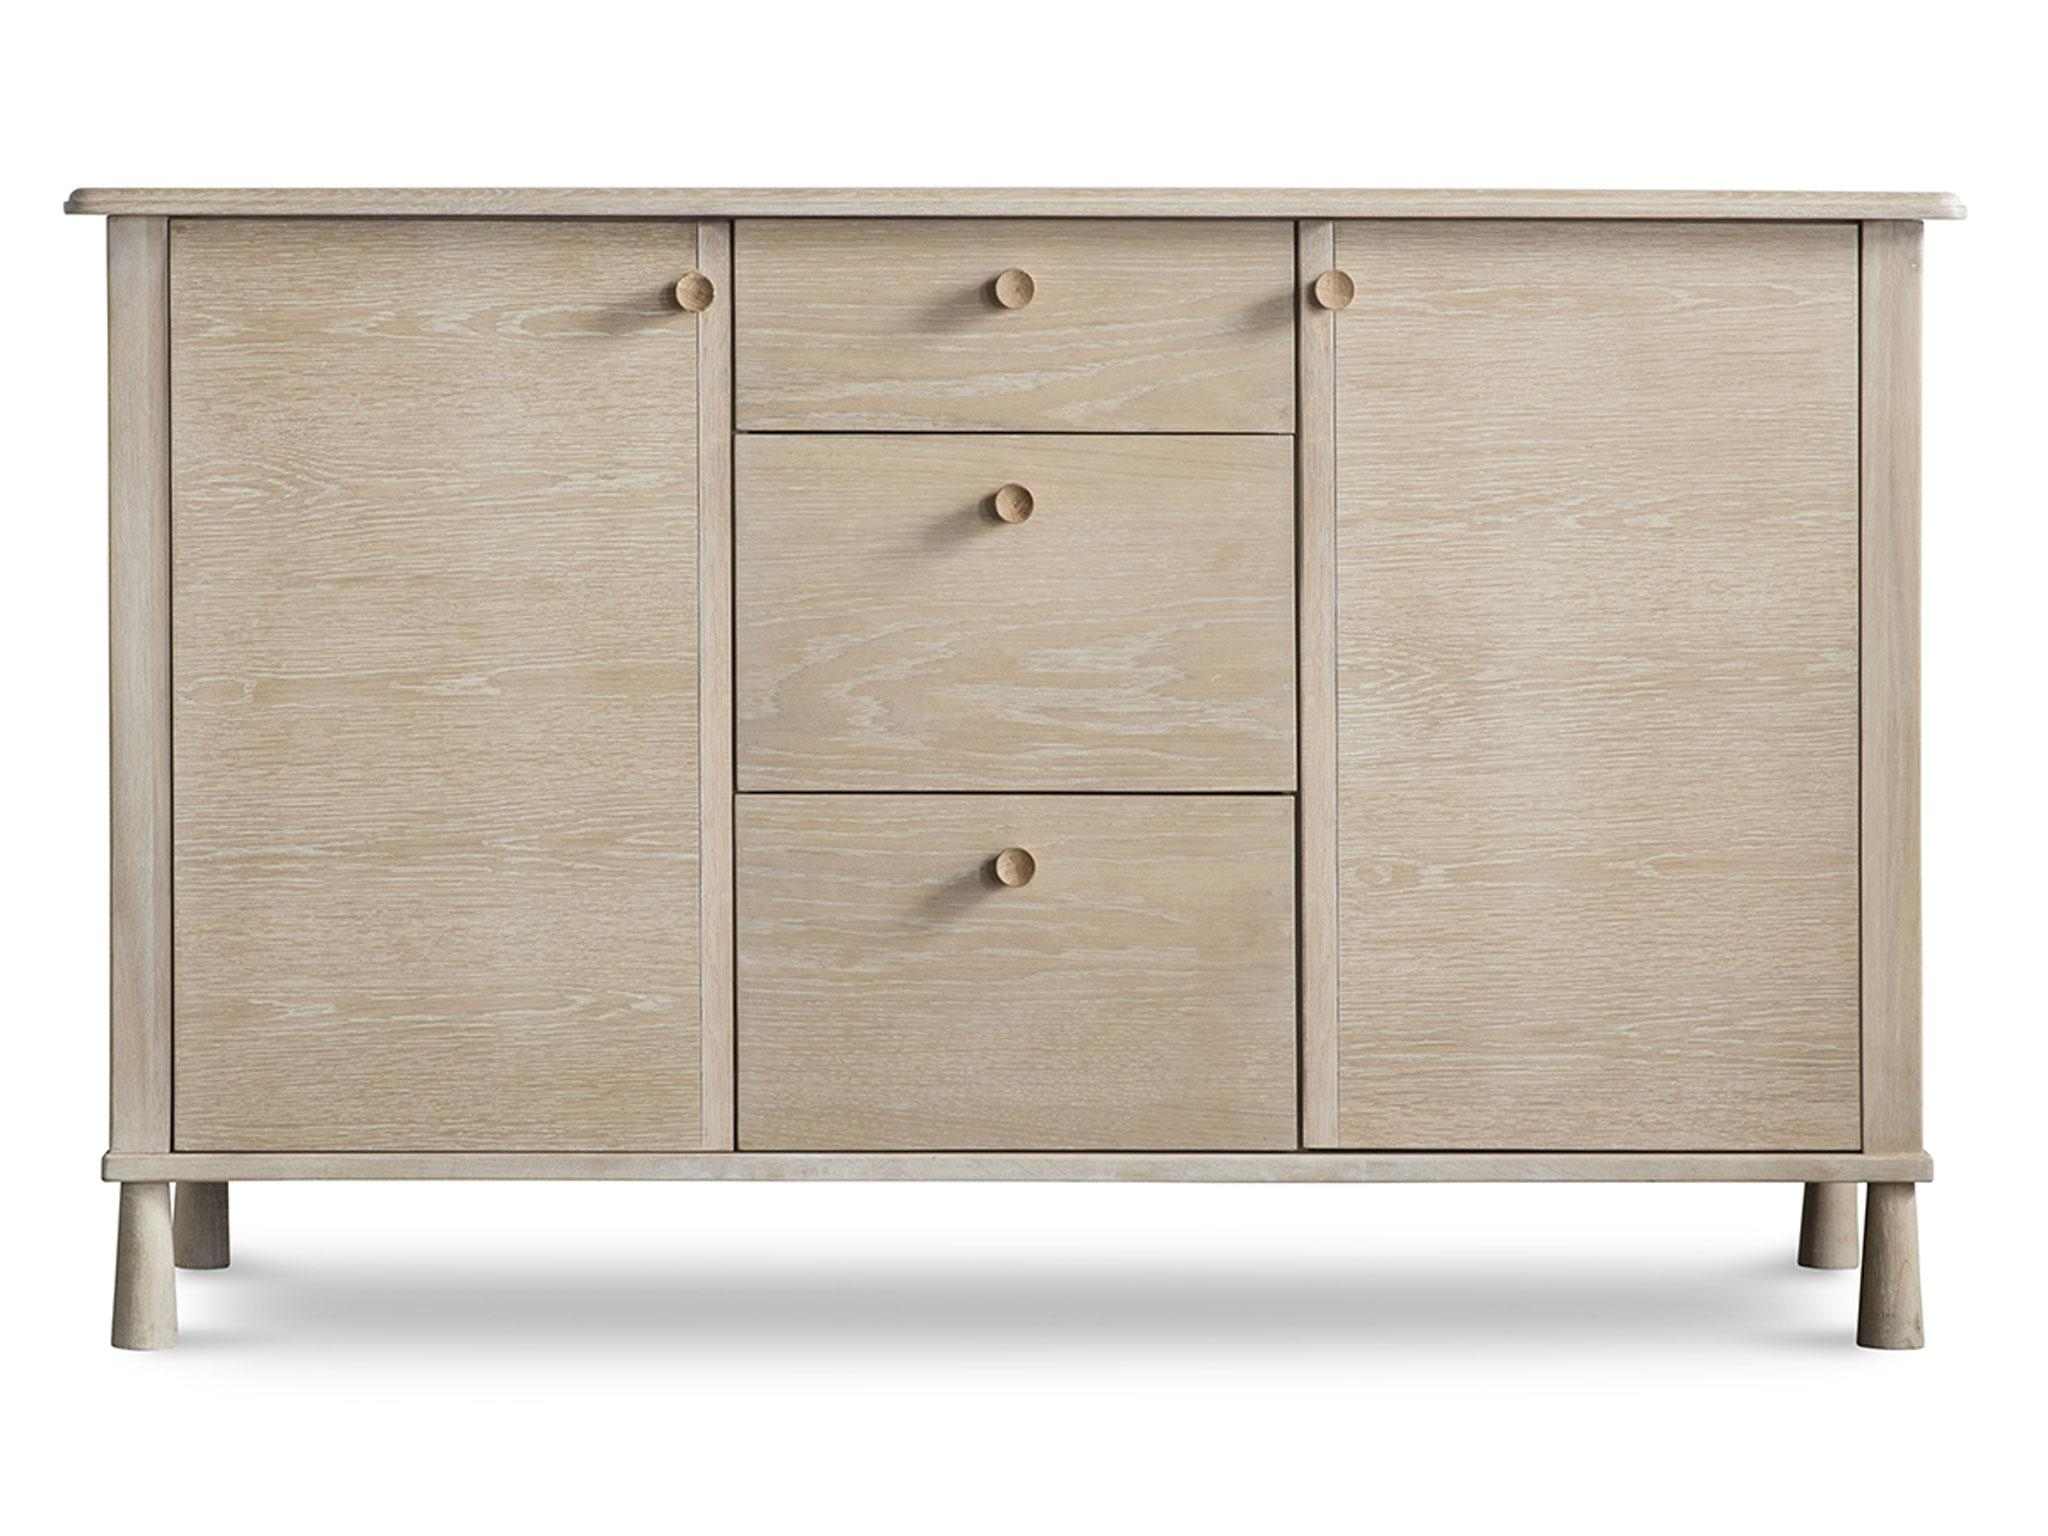 Oil Pale Finish 4 Door Sideboards Intended For Most Up To Date 10 Best Sideboards (Gallery 4 of 20)